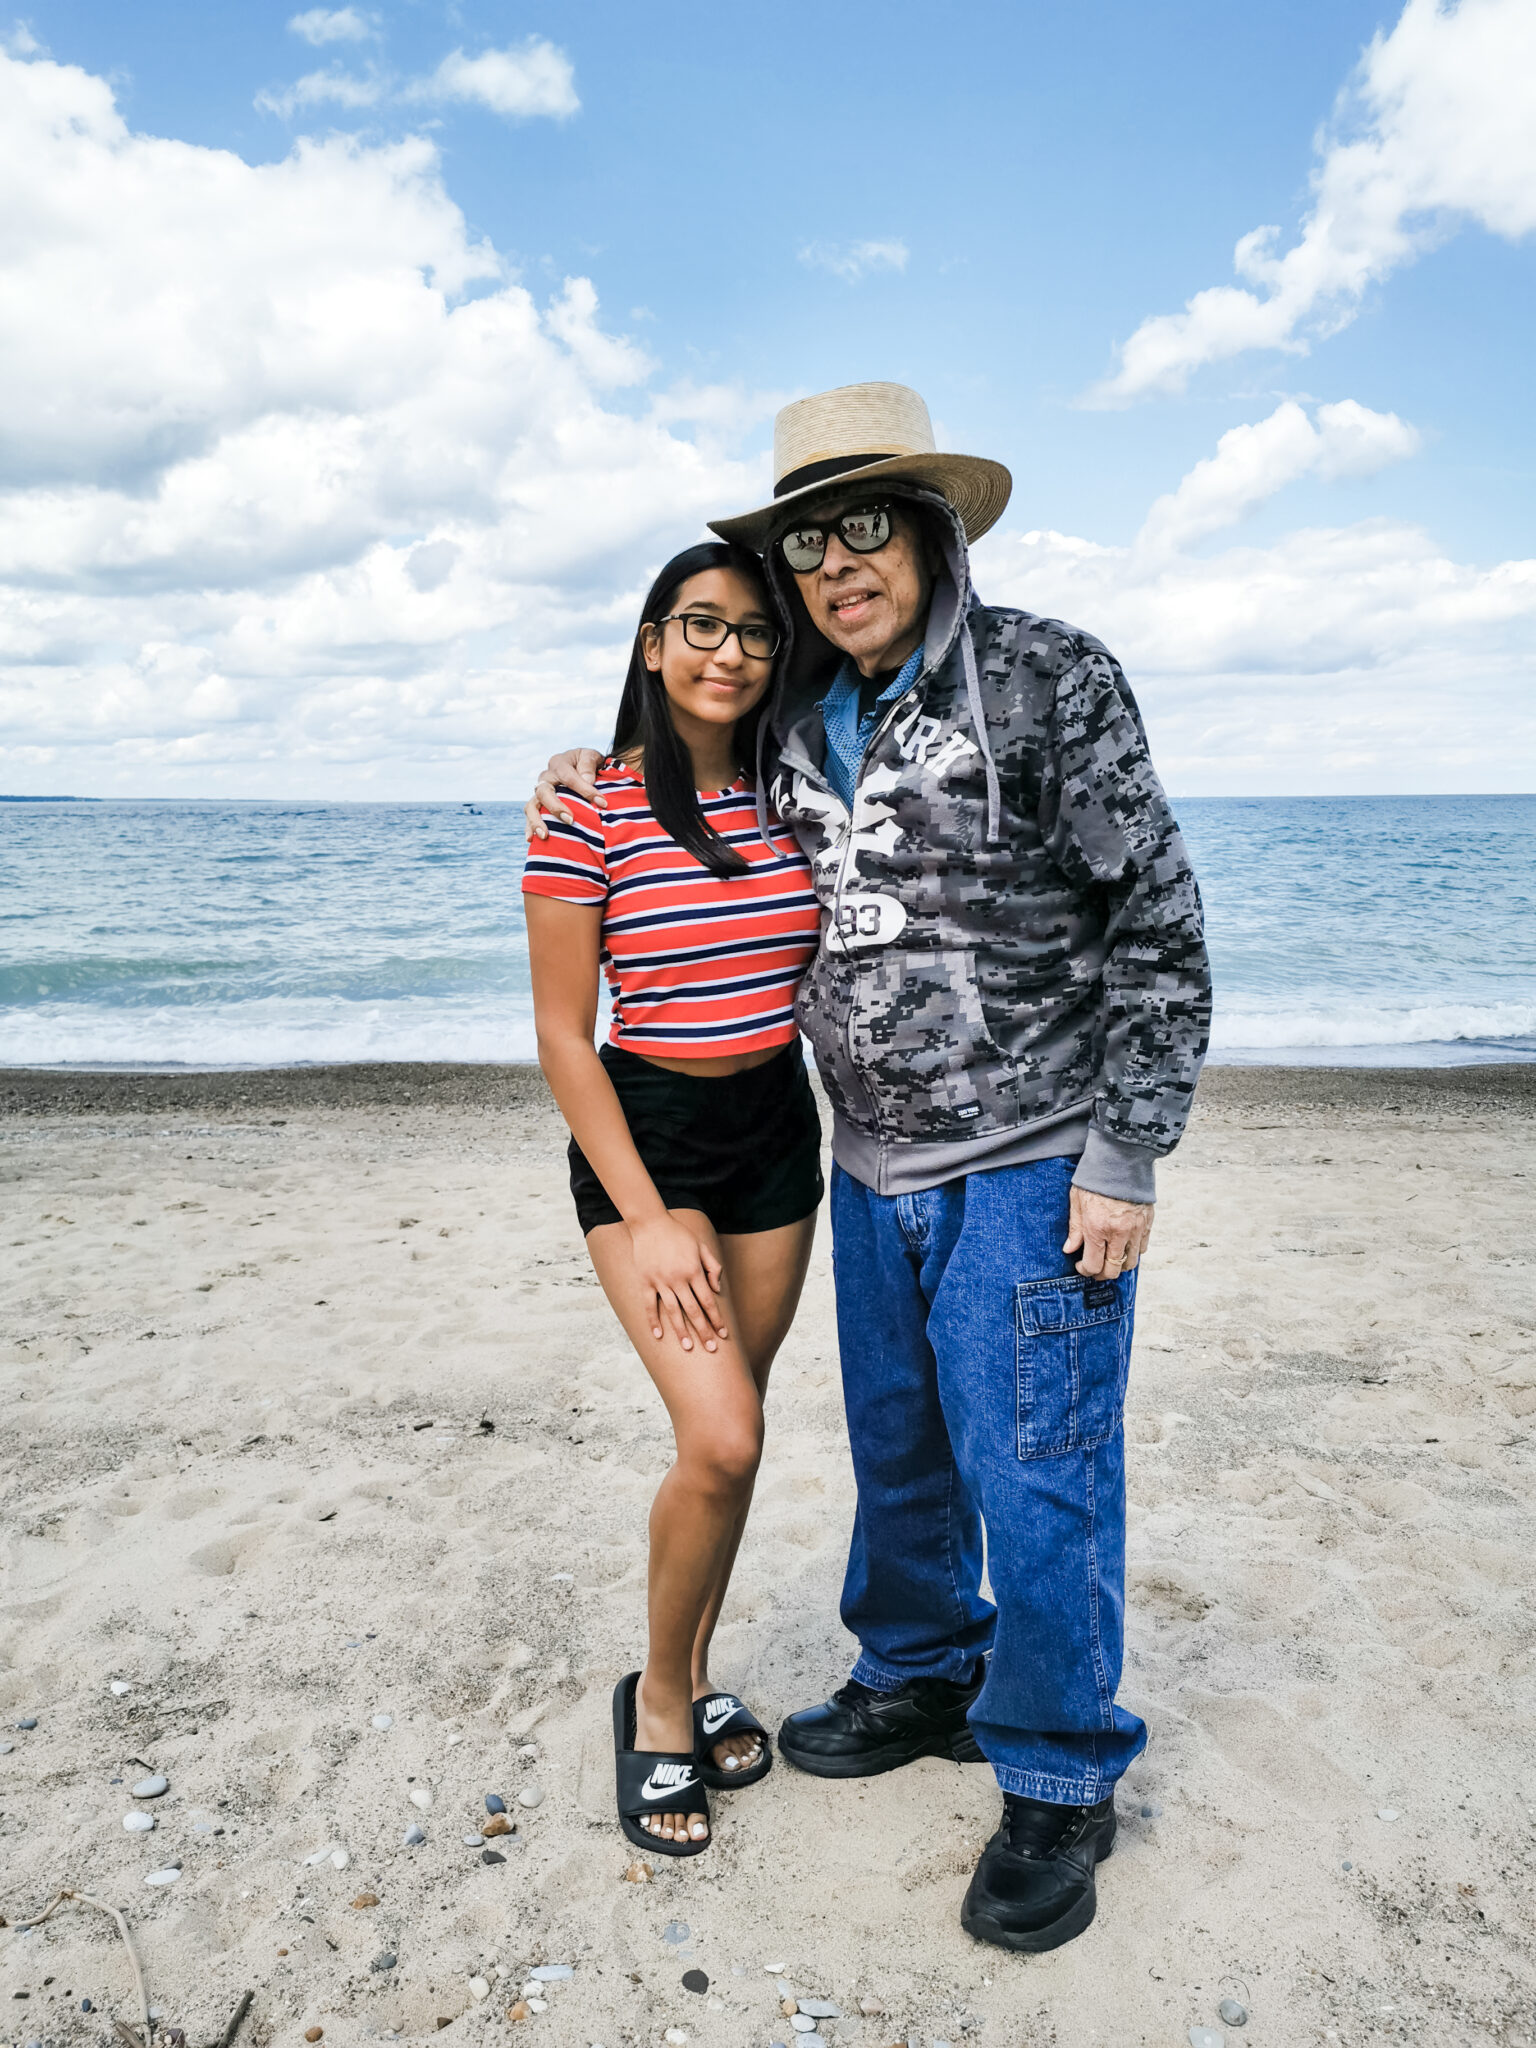 Gabby and her Abuelito posing ont he beach, they are both smiling.